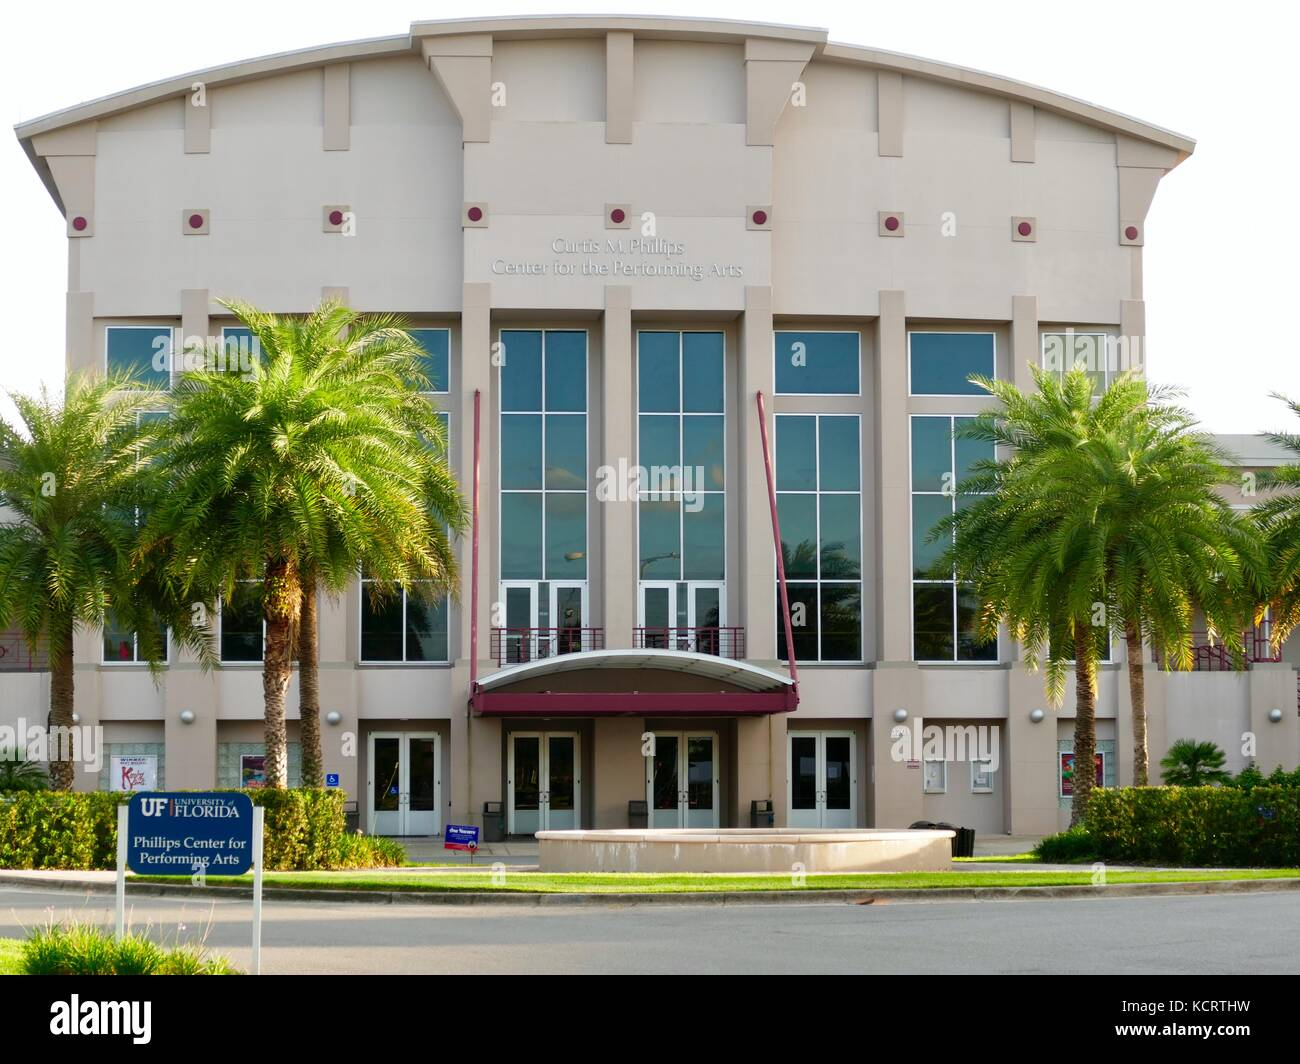 Curtis M. Phillips Center for the Performing Arts, University of Florida, Gainesville, Florida, USA. Speaking venue - Stock Image